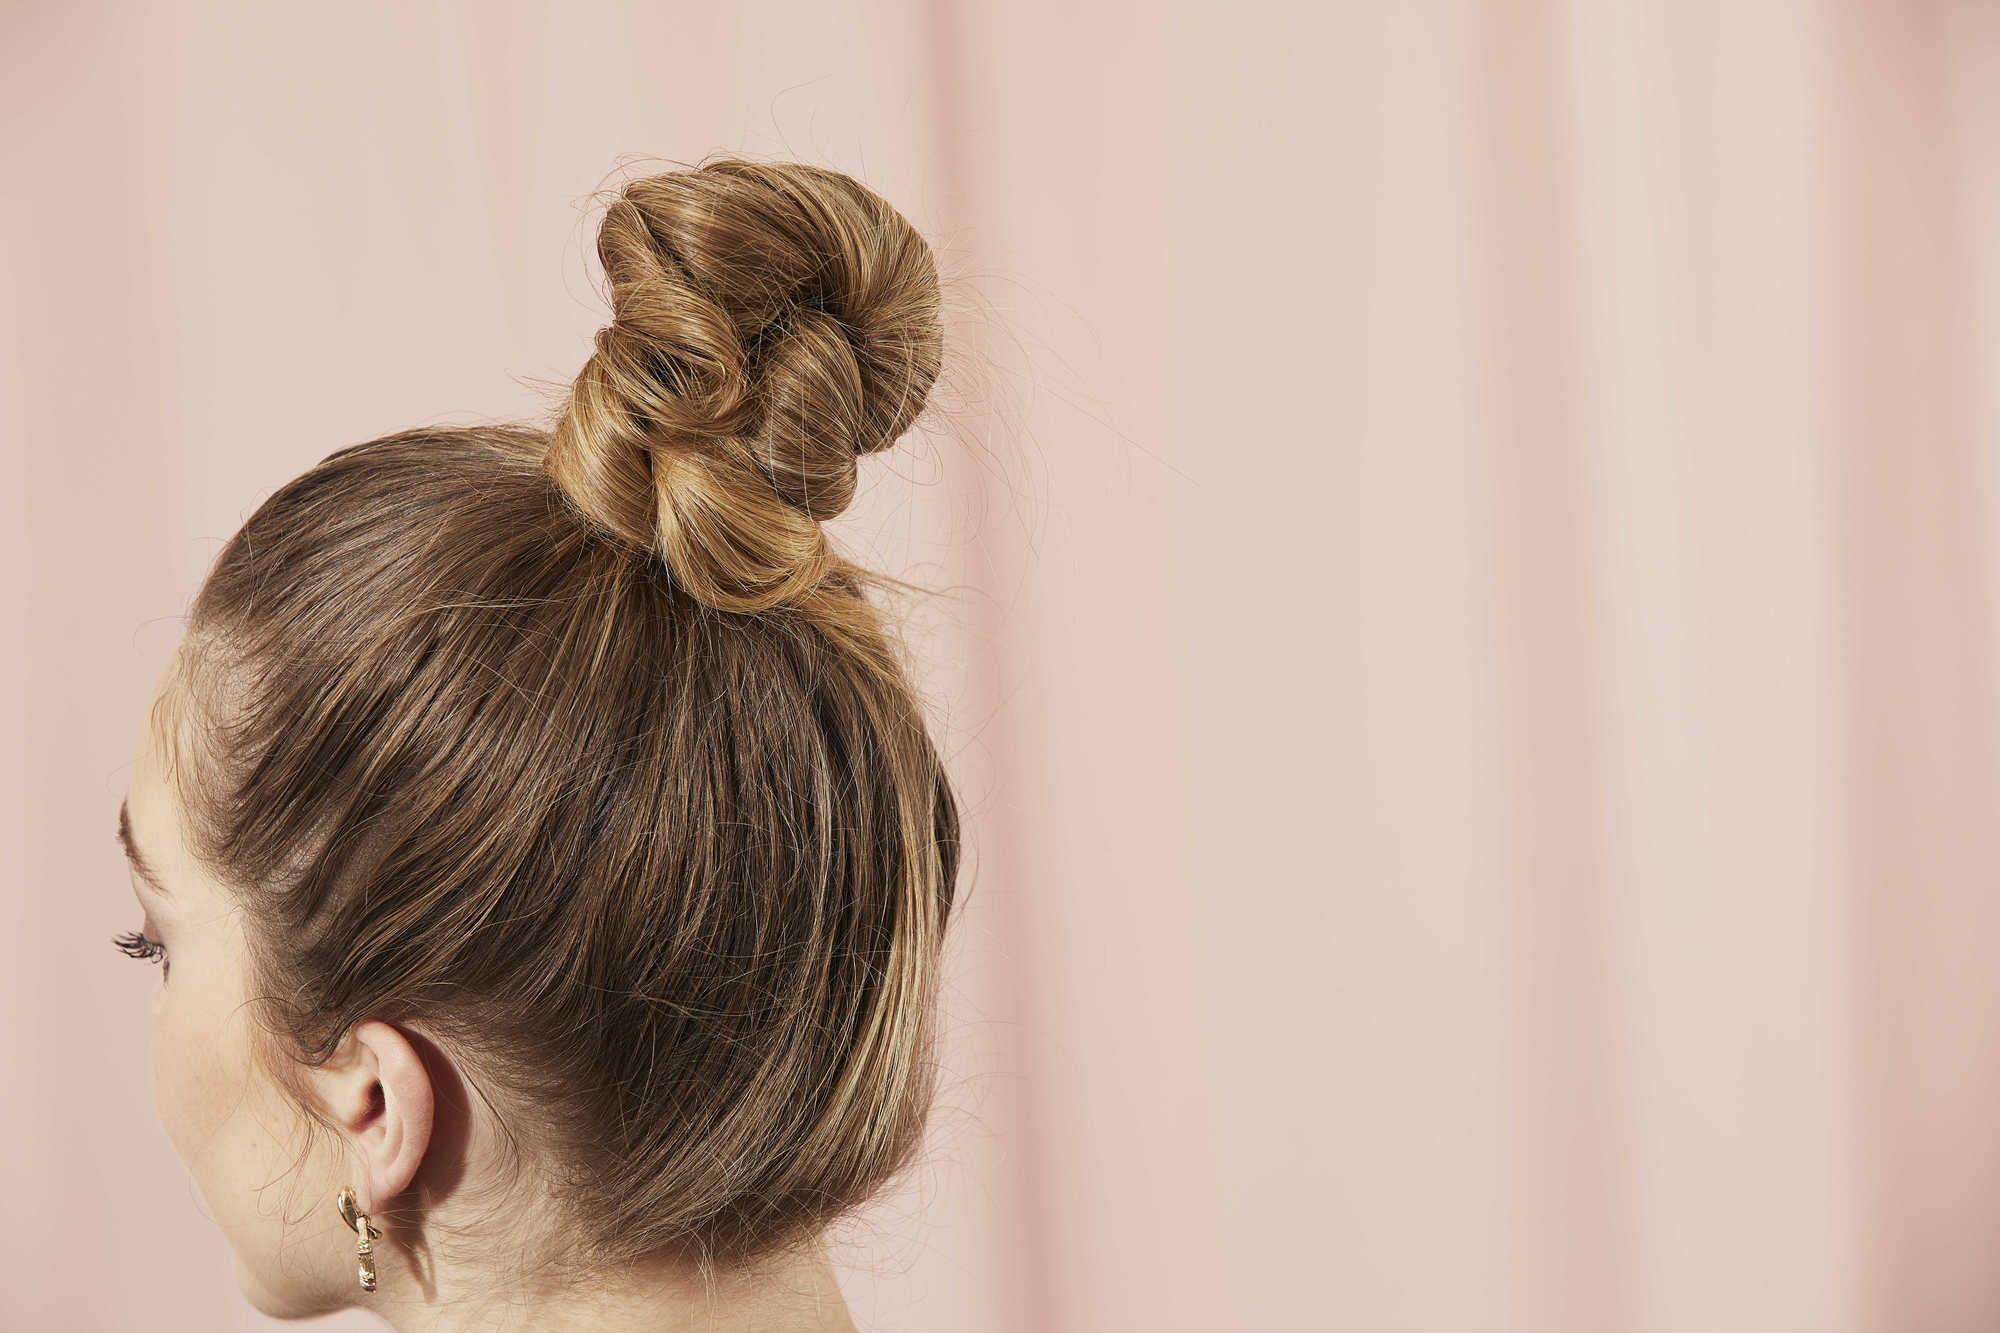 Woman with dark blonde hair styled into a top knot